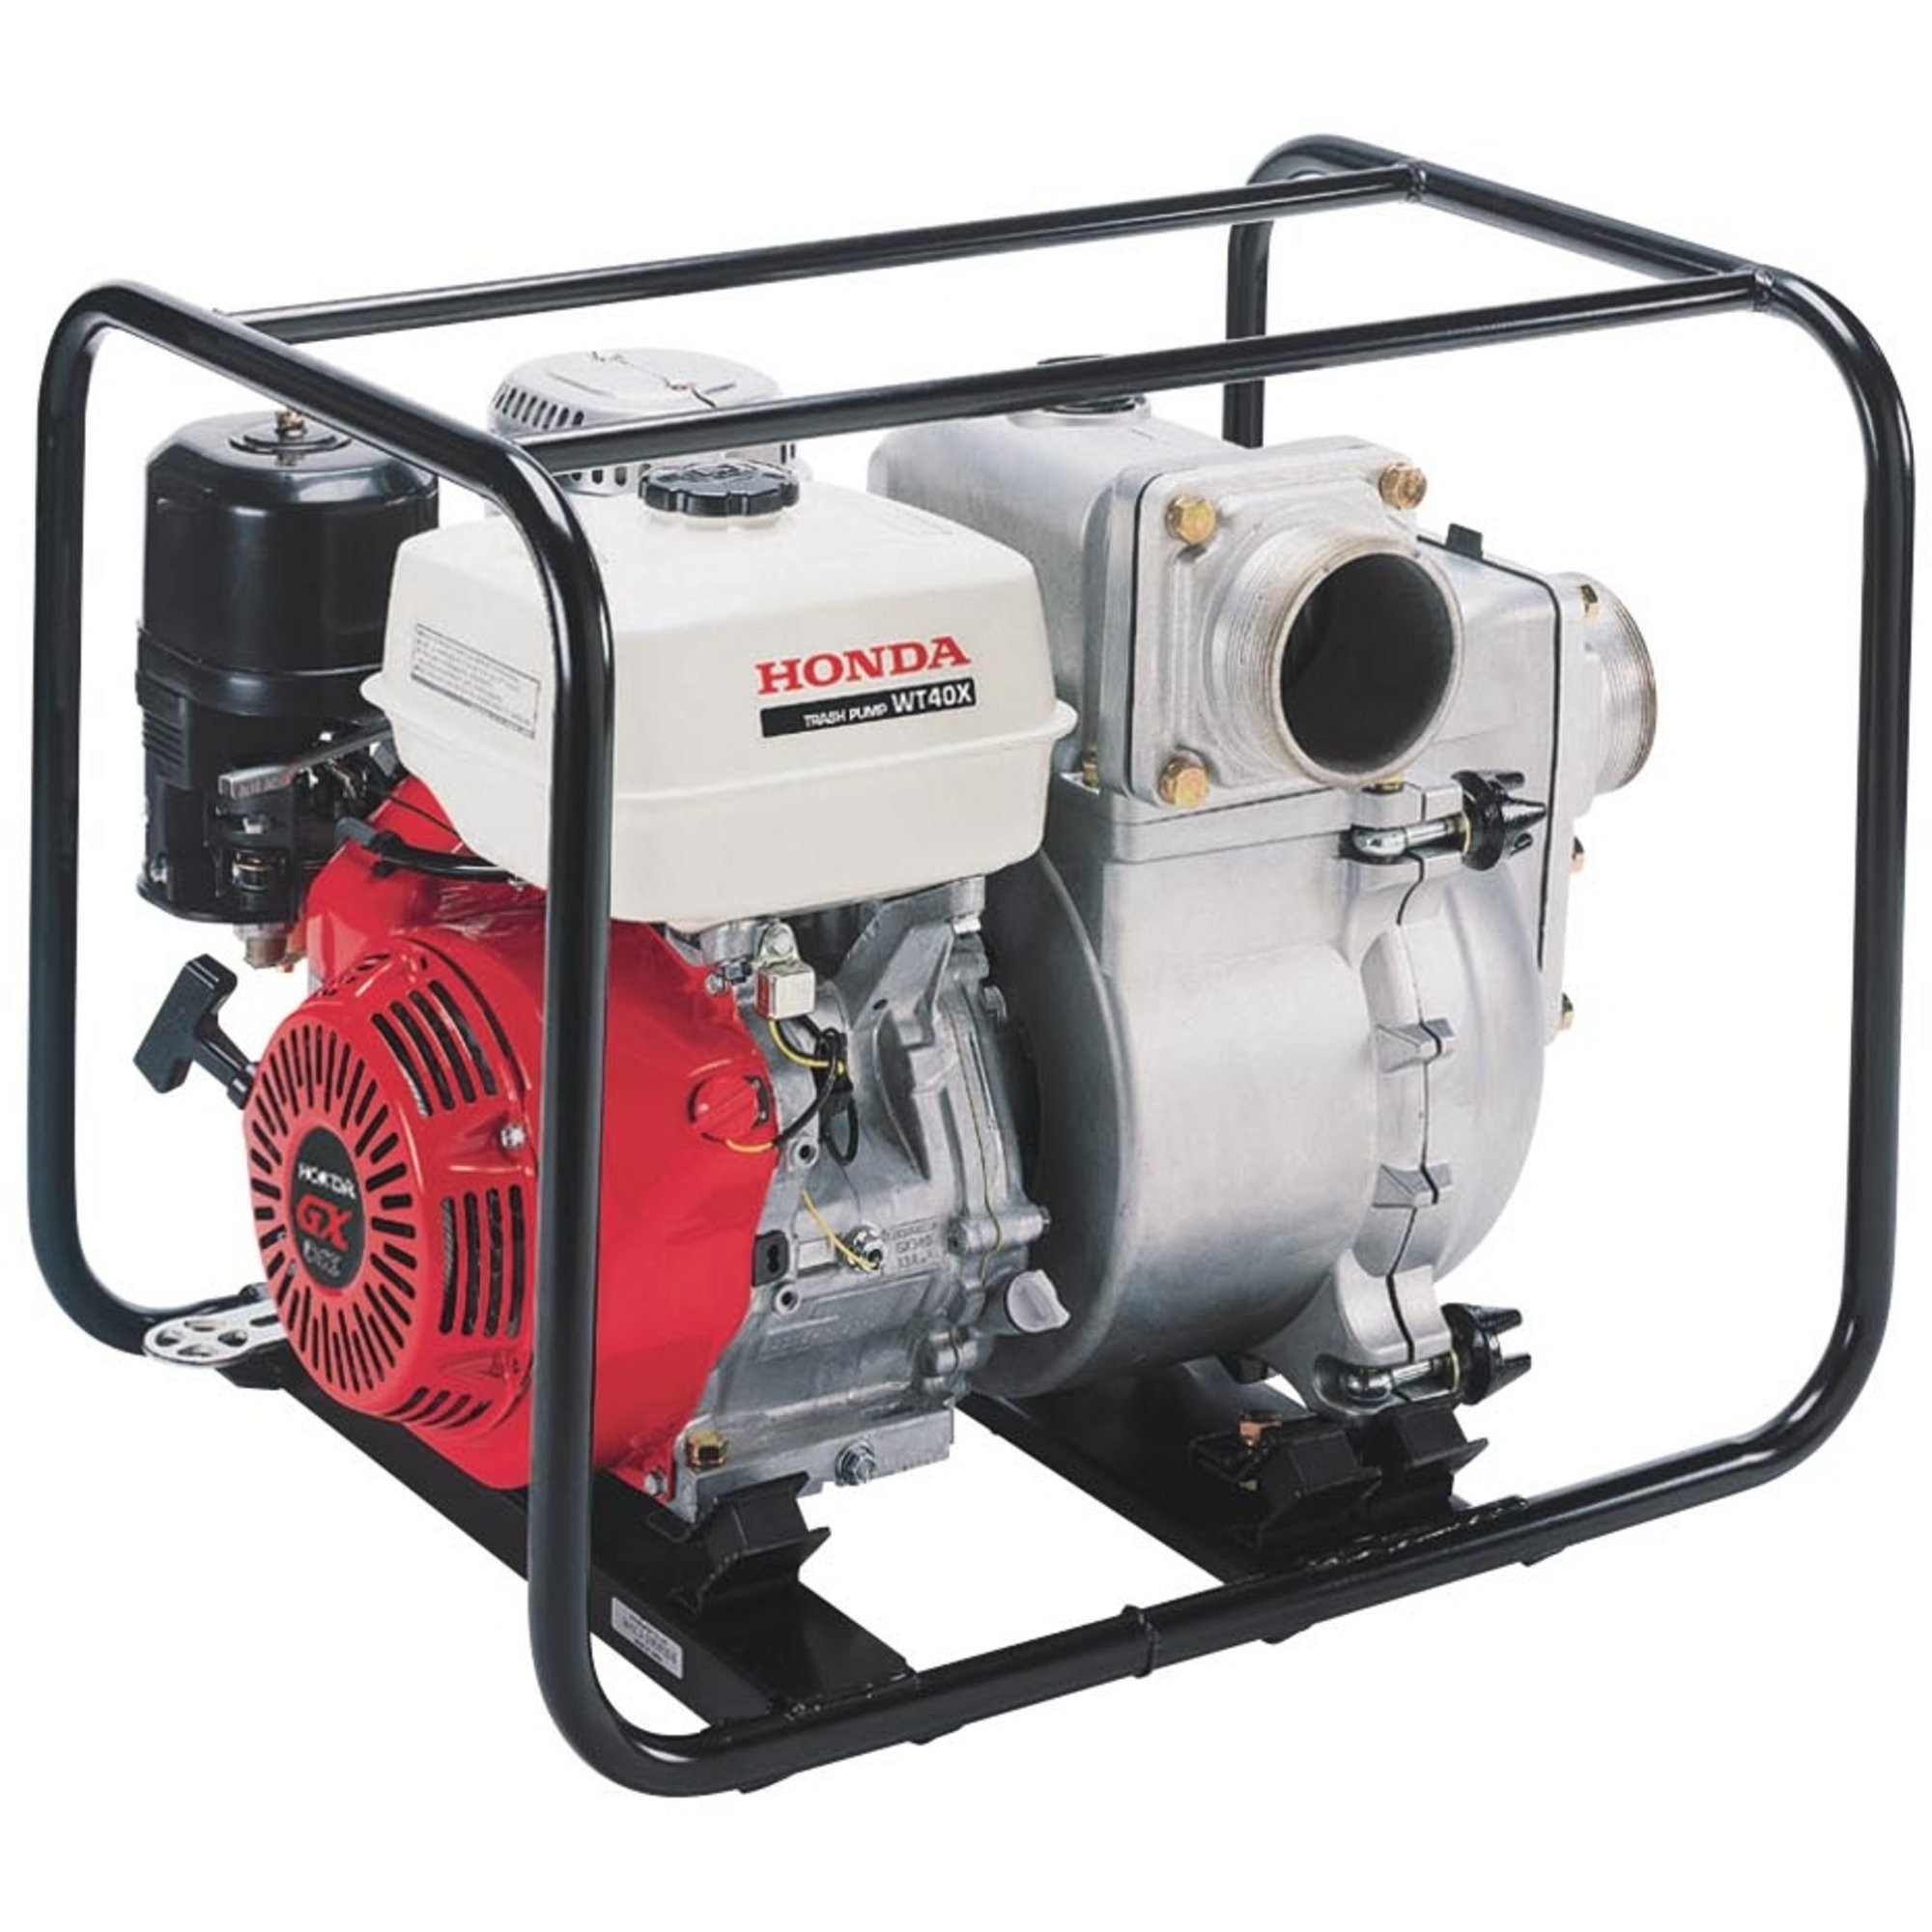 F220 Honda Tiller Engine Diagram Wiring Library Fg100 Transmission What Type Of Pump Do I Need